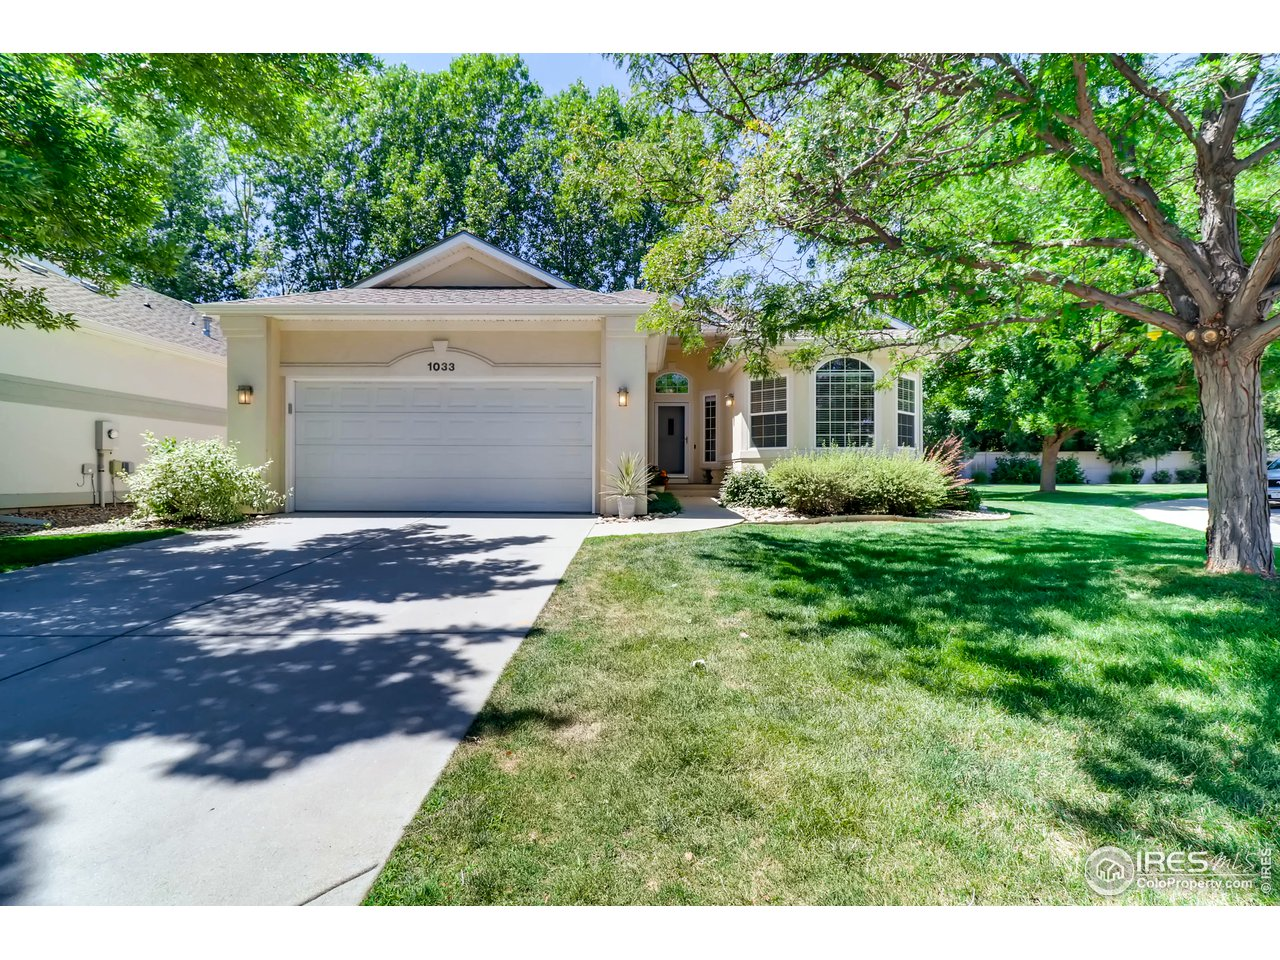 1033 Champion Cir, Longmont CO 80503